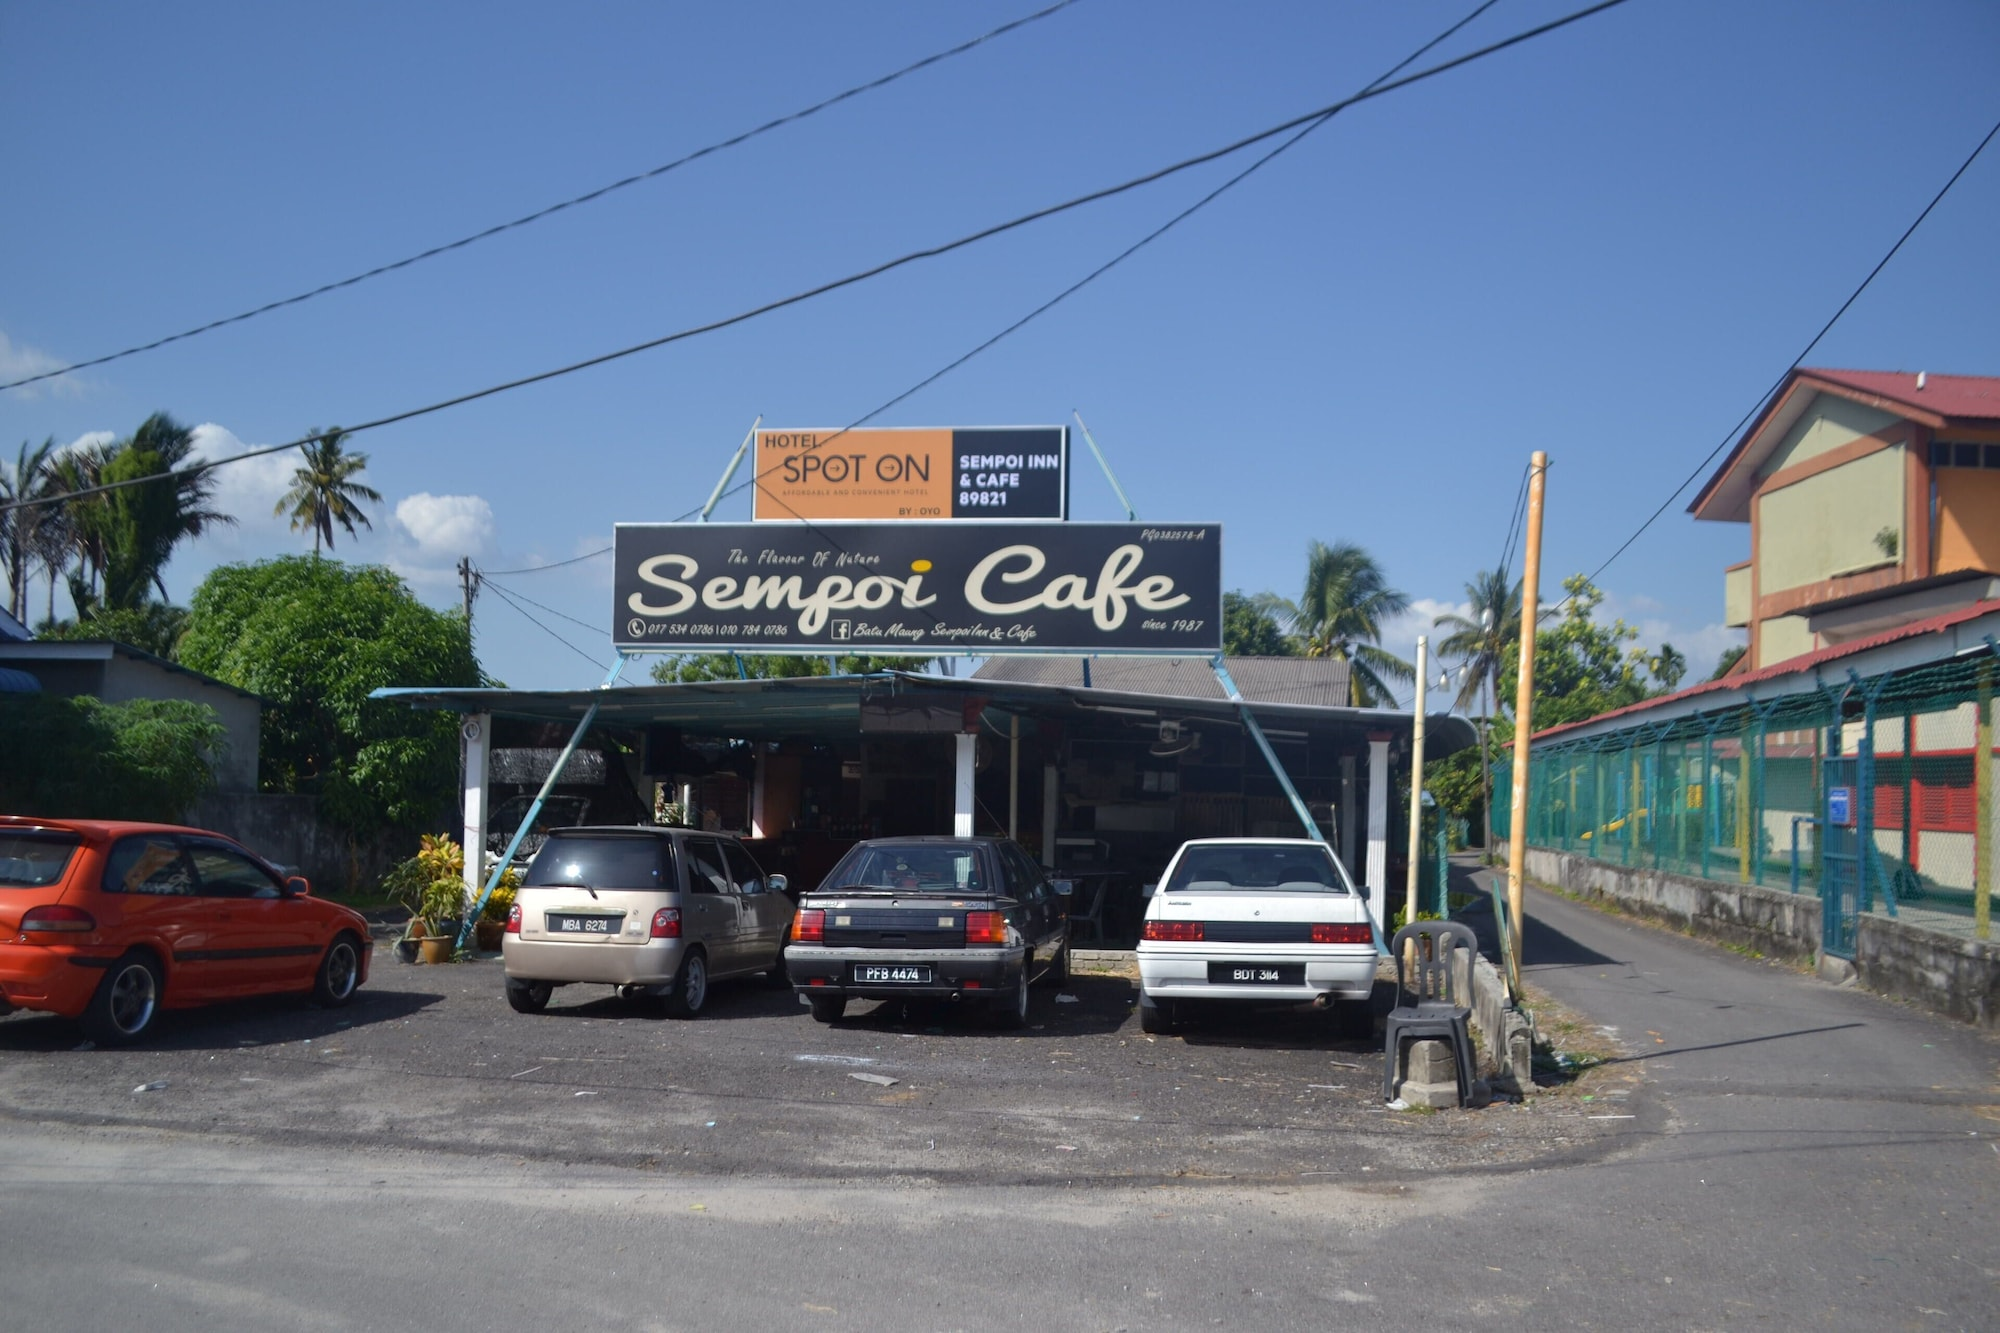 SPOT ON 89821 Batu Maung Sempoi Inn Cafe, Barat Daya